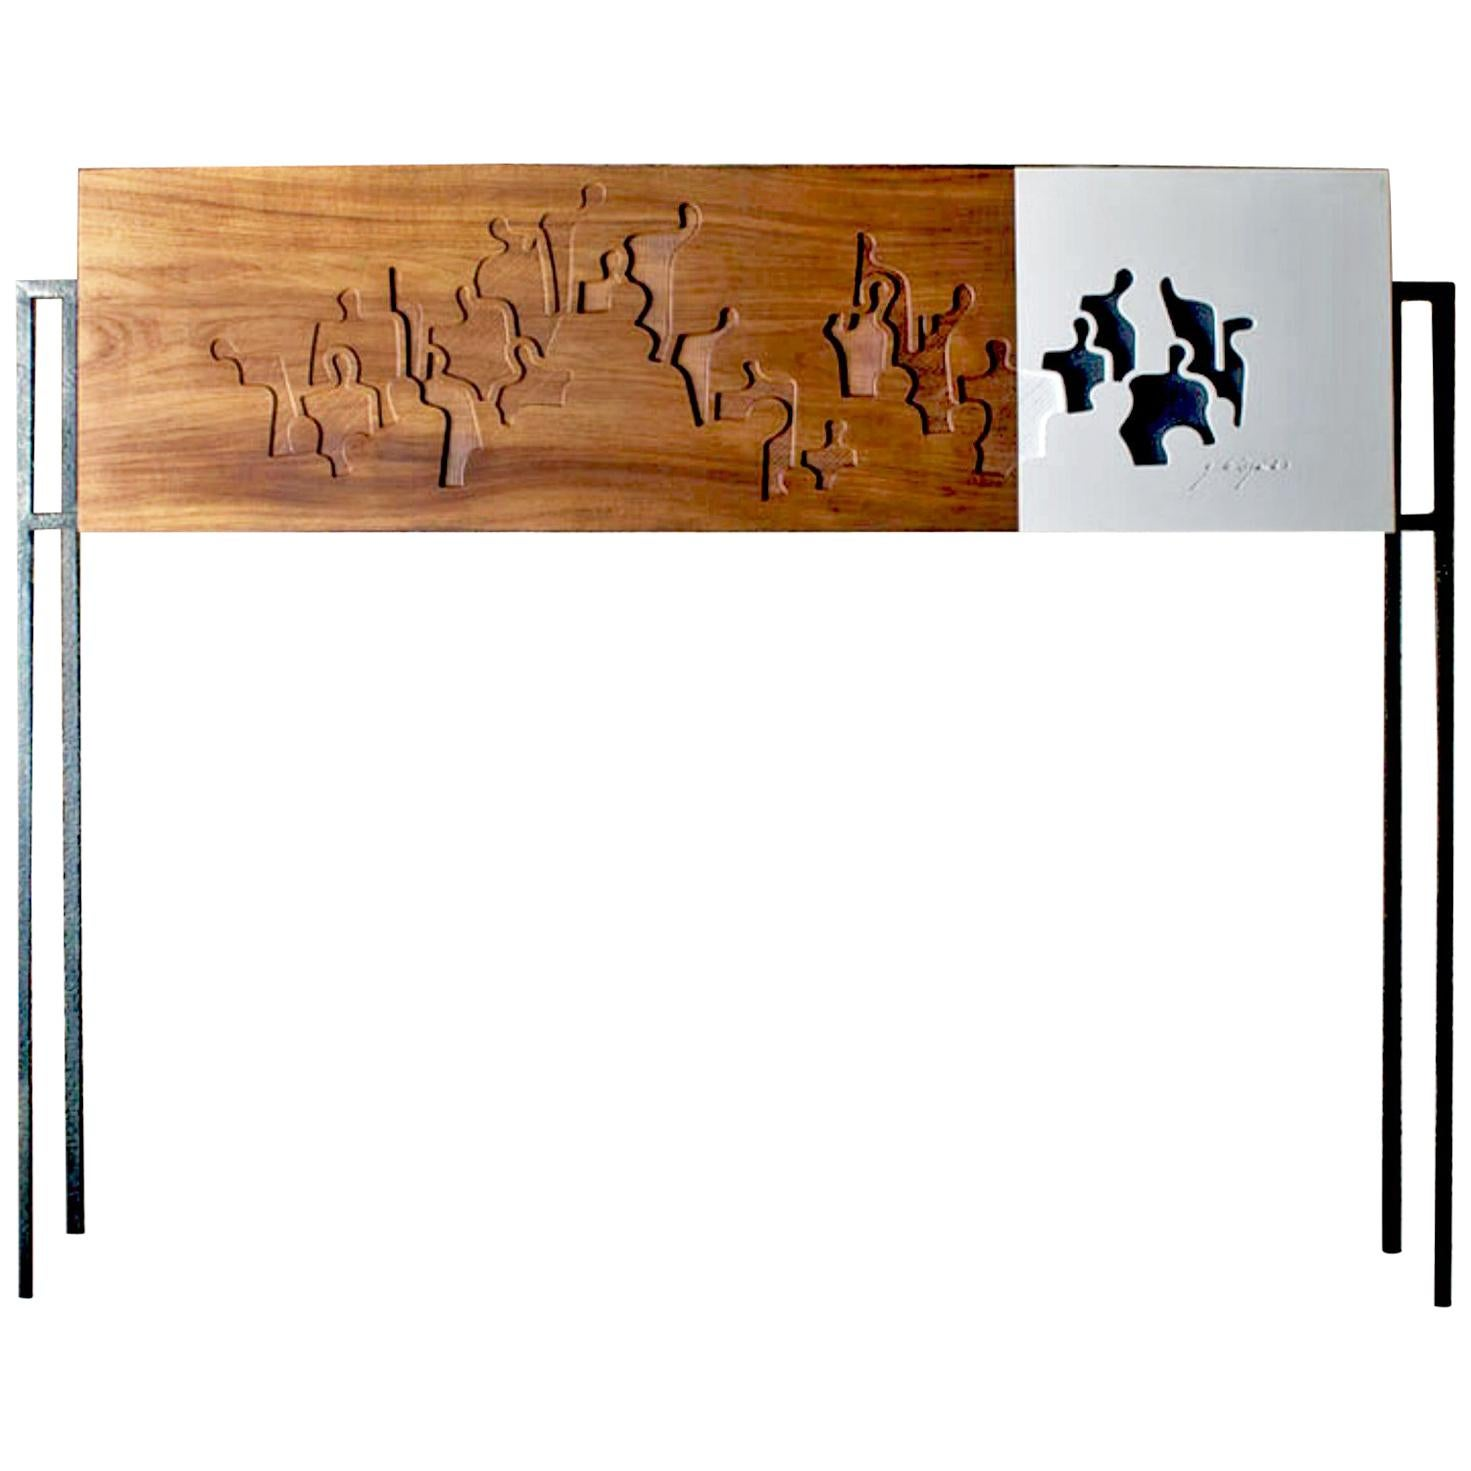 Contemporary Handmade Unique Sideboard or small Davenport made in France